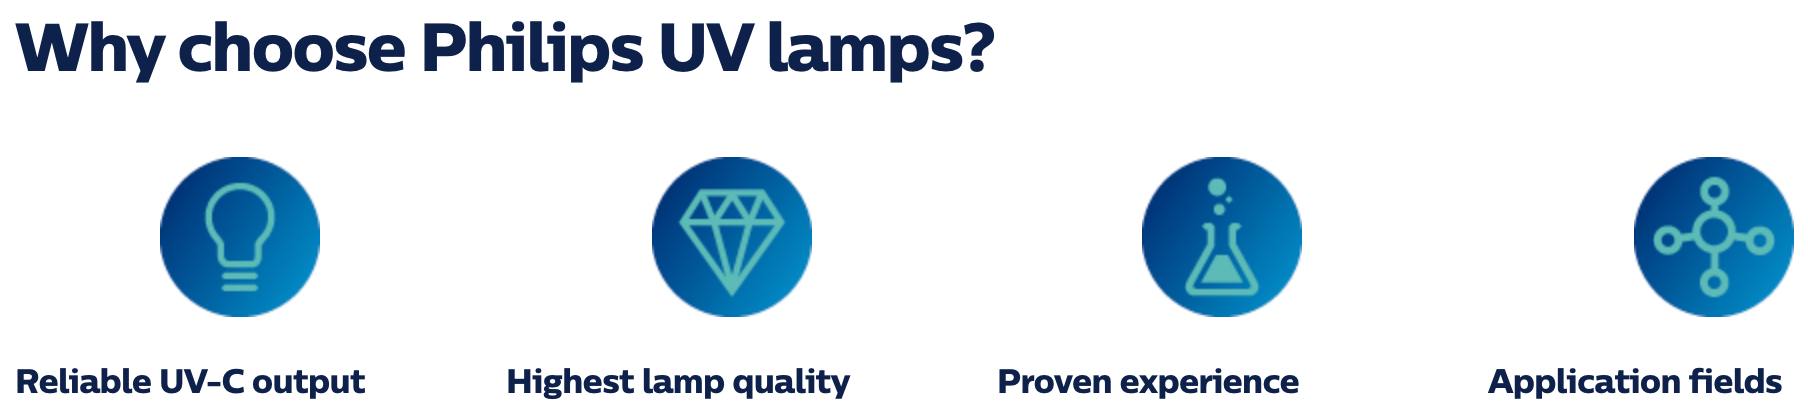 Why Choose Philips UV Lamps?